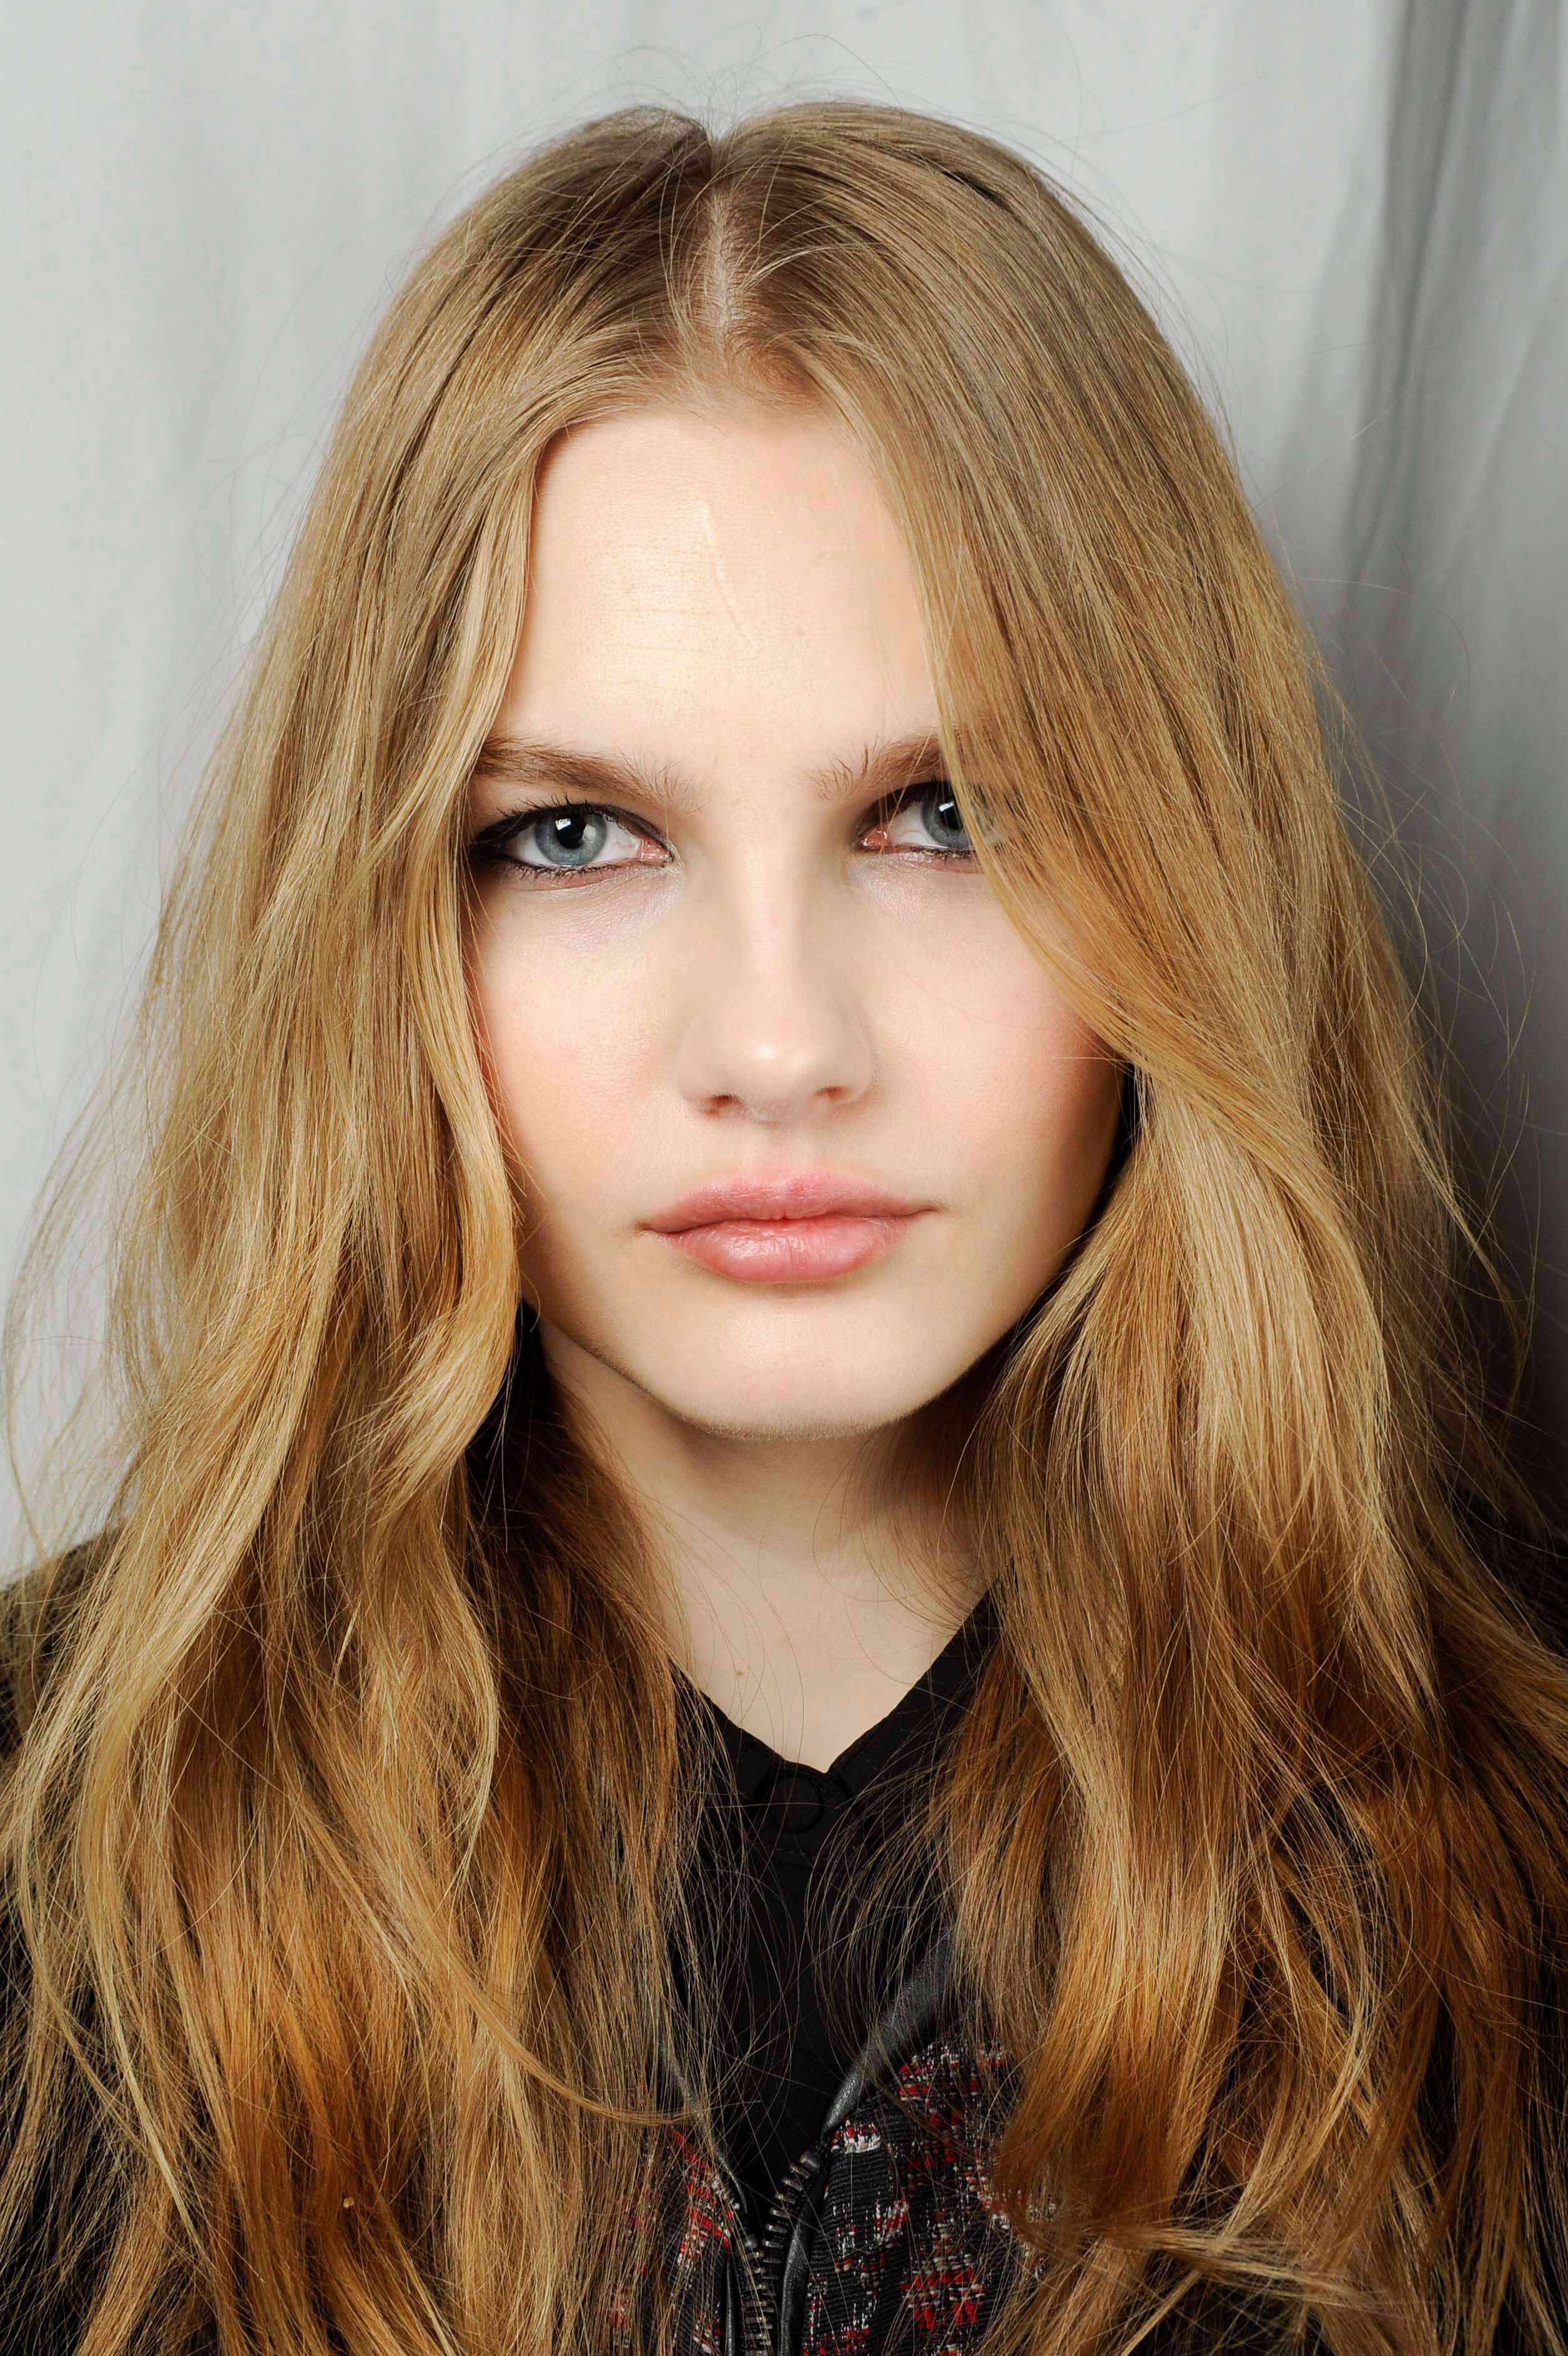 Shades of blonde hair: Woman with wavy warm blonde long hair wearing a black top.